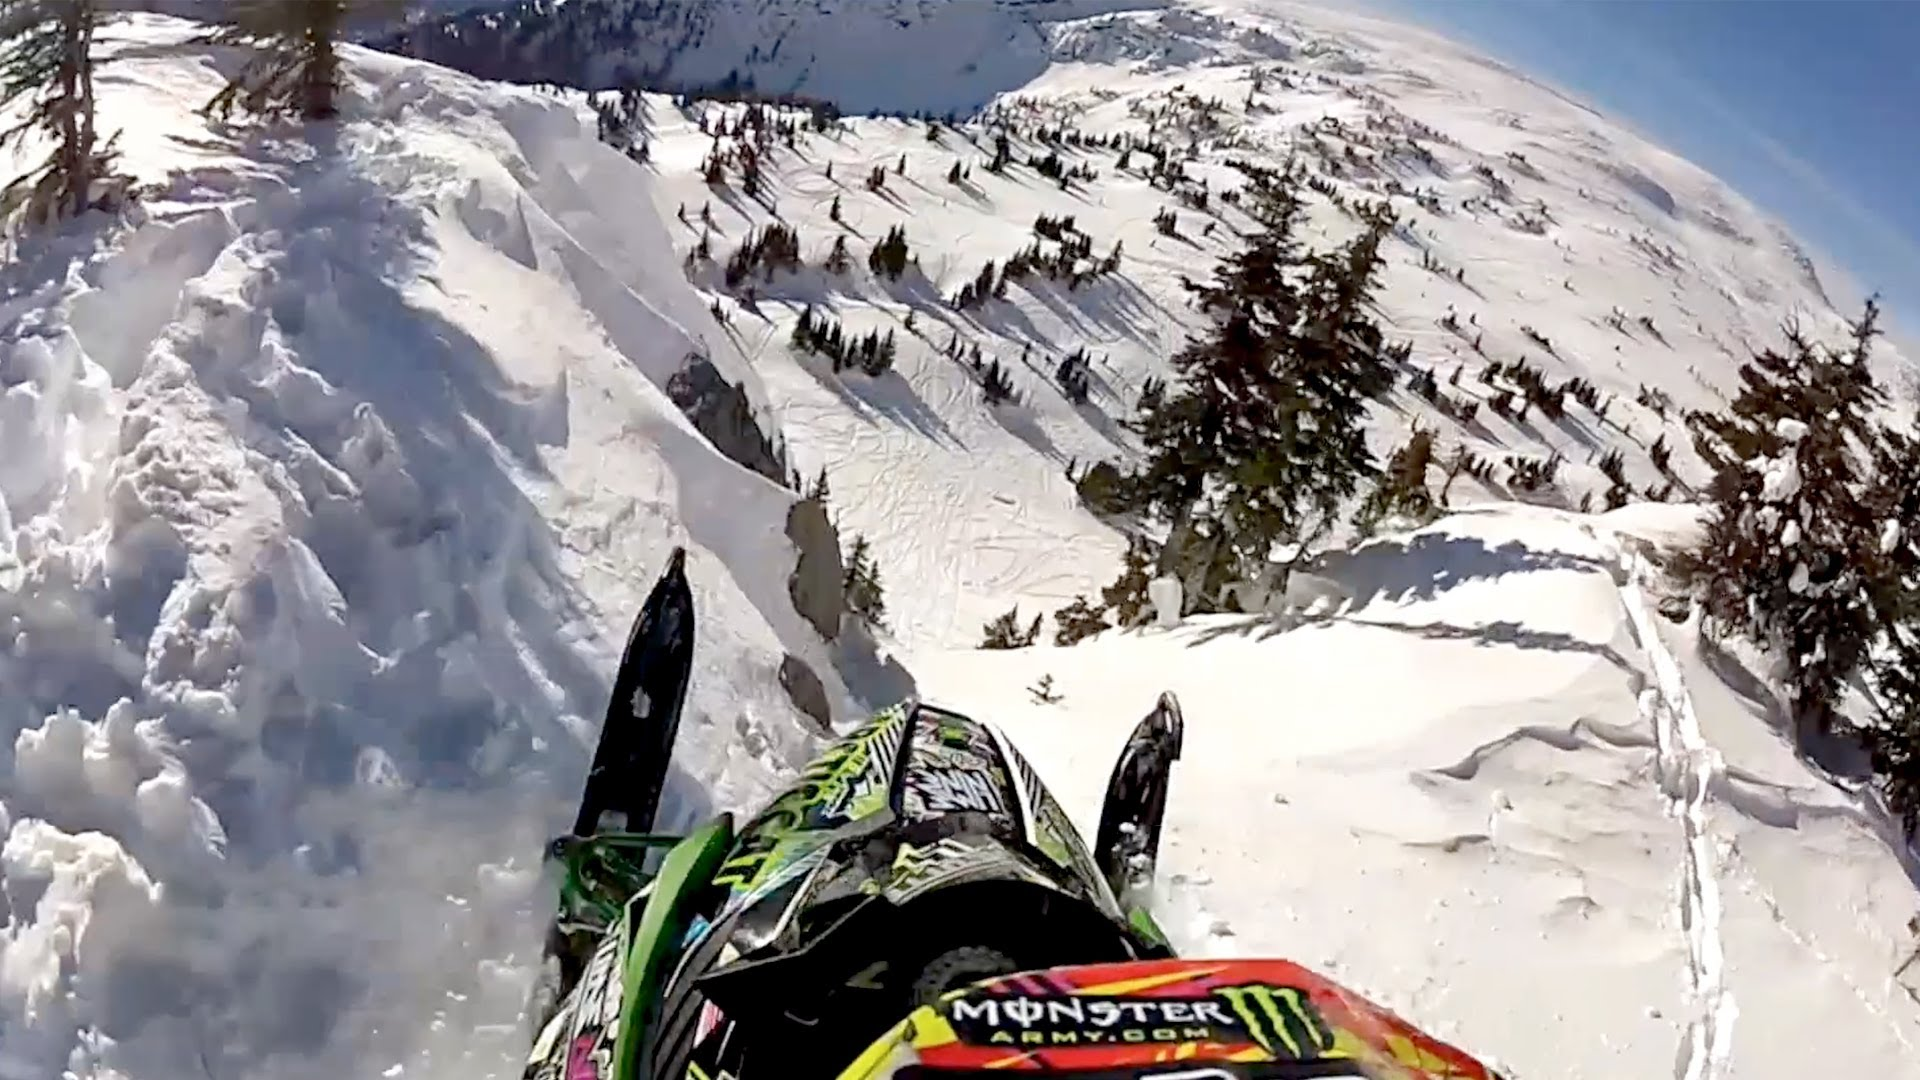 Gopro Video Of A Snowmobile Getting Some Serious Air While